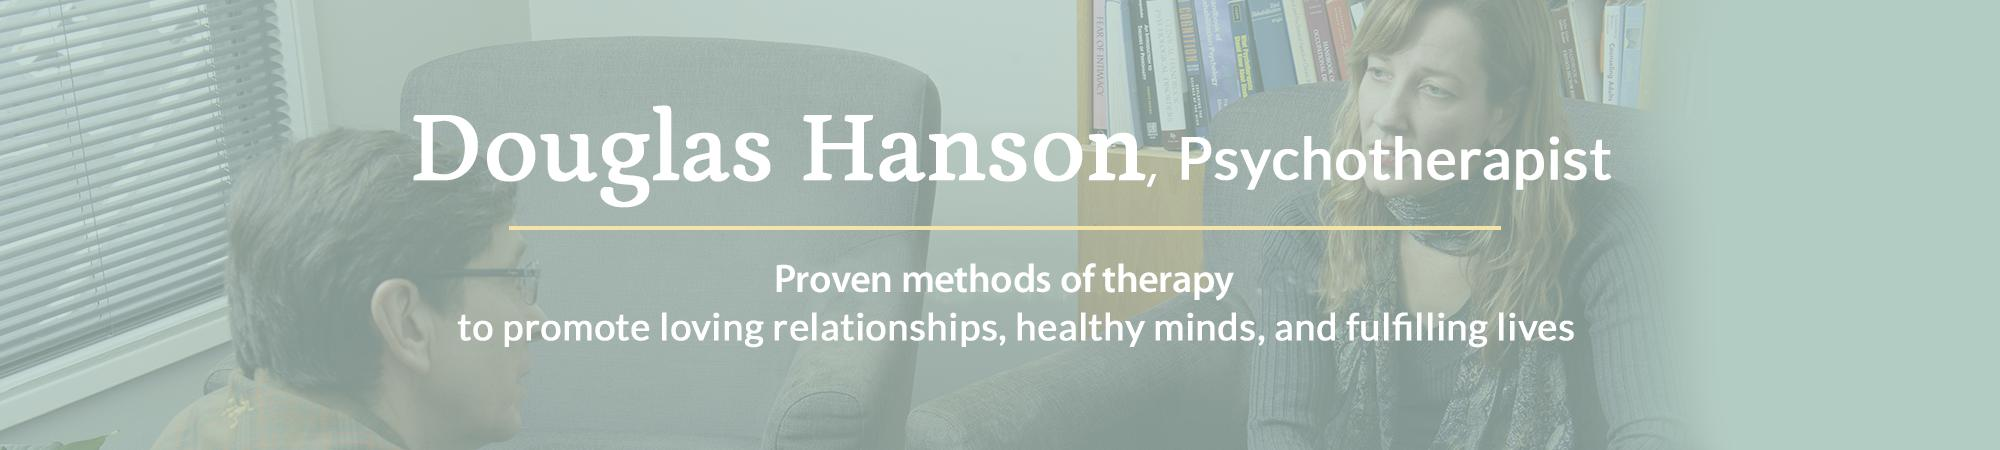 Douglas Hanson Therapist header image